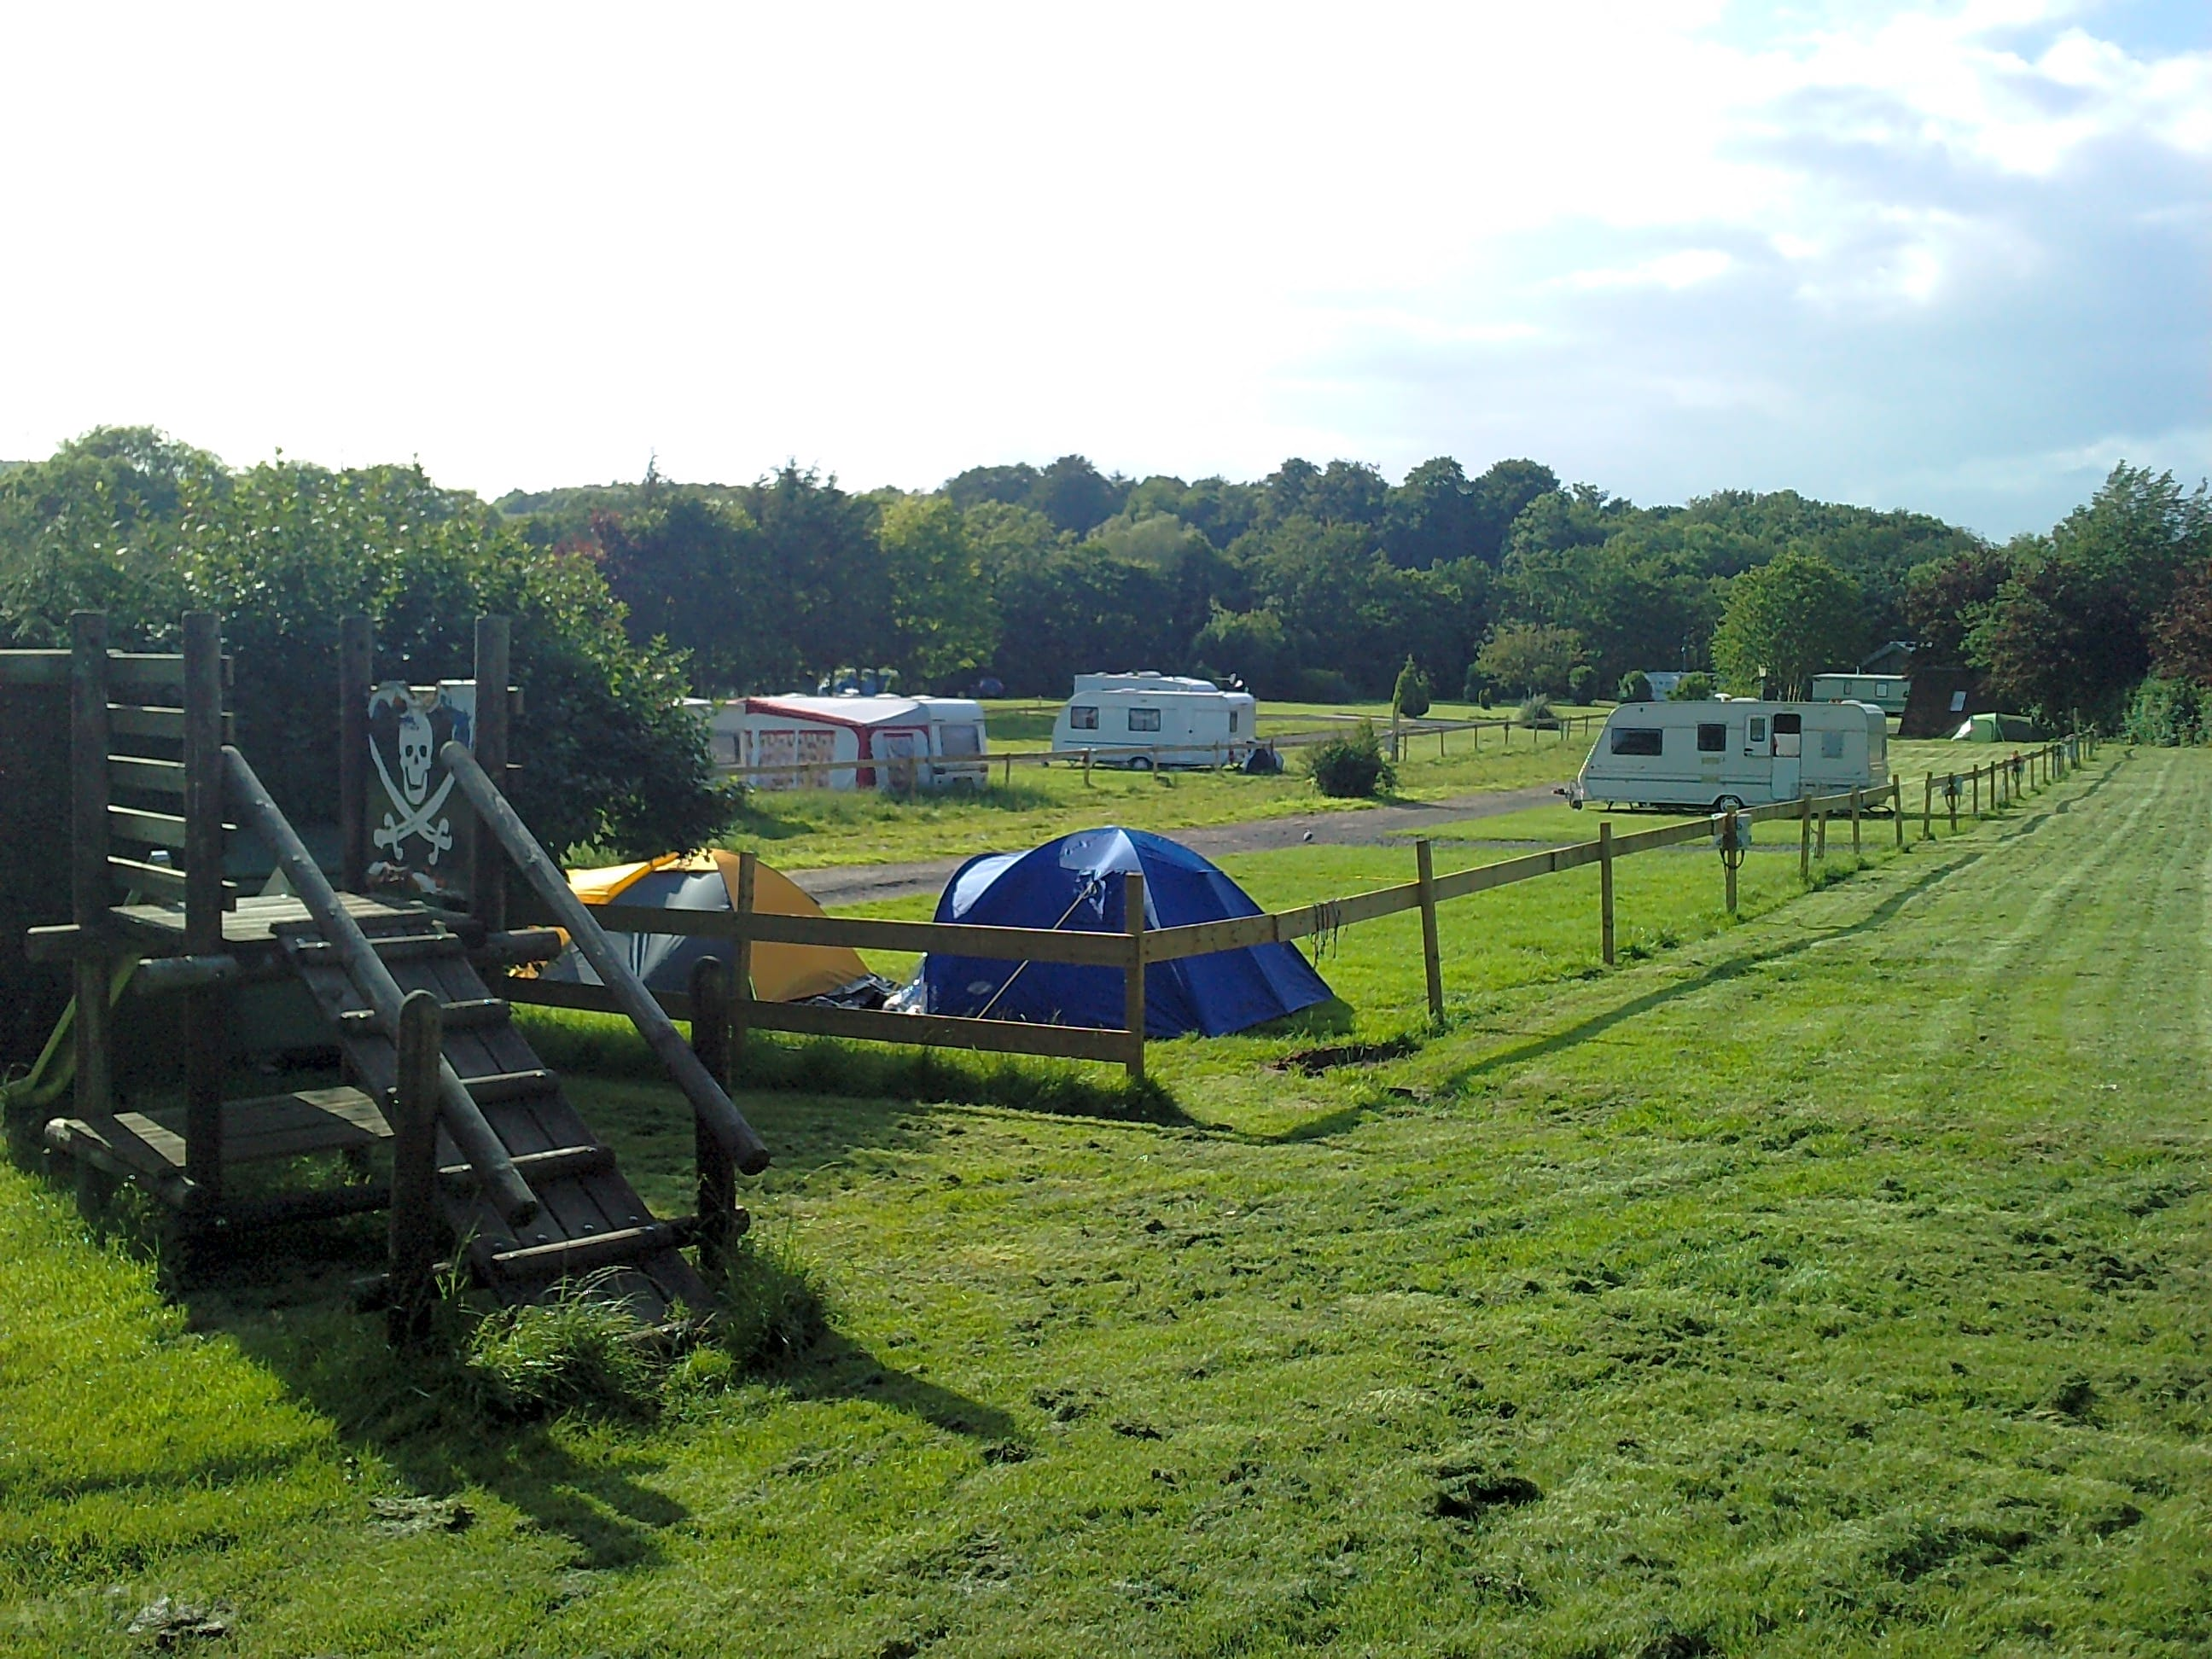 Budle Bay Camp and Caravan Site, Belford - Pitchup®